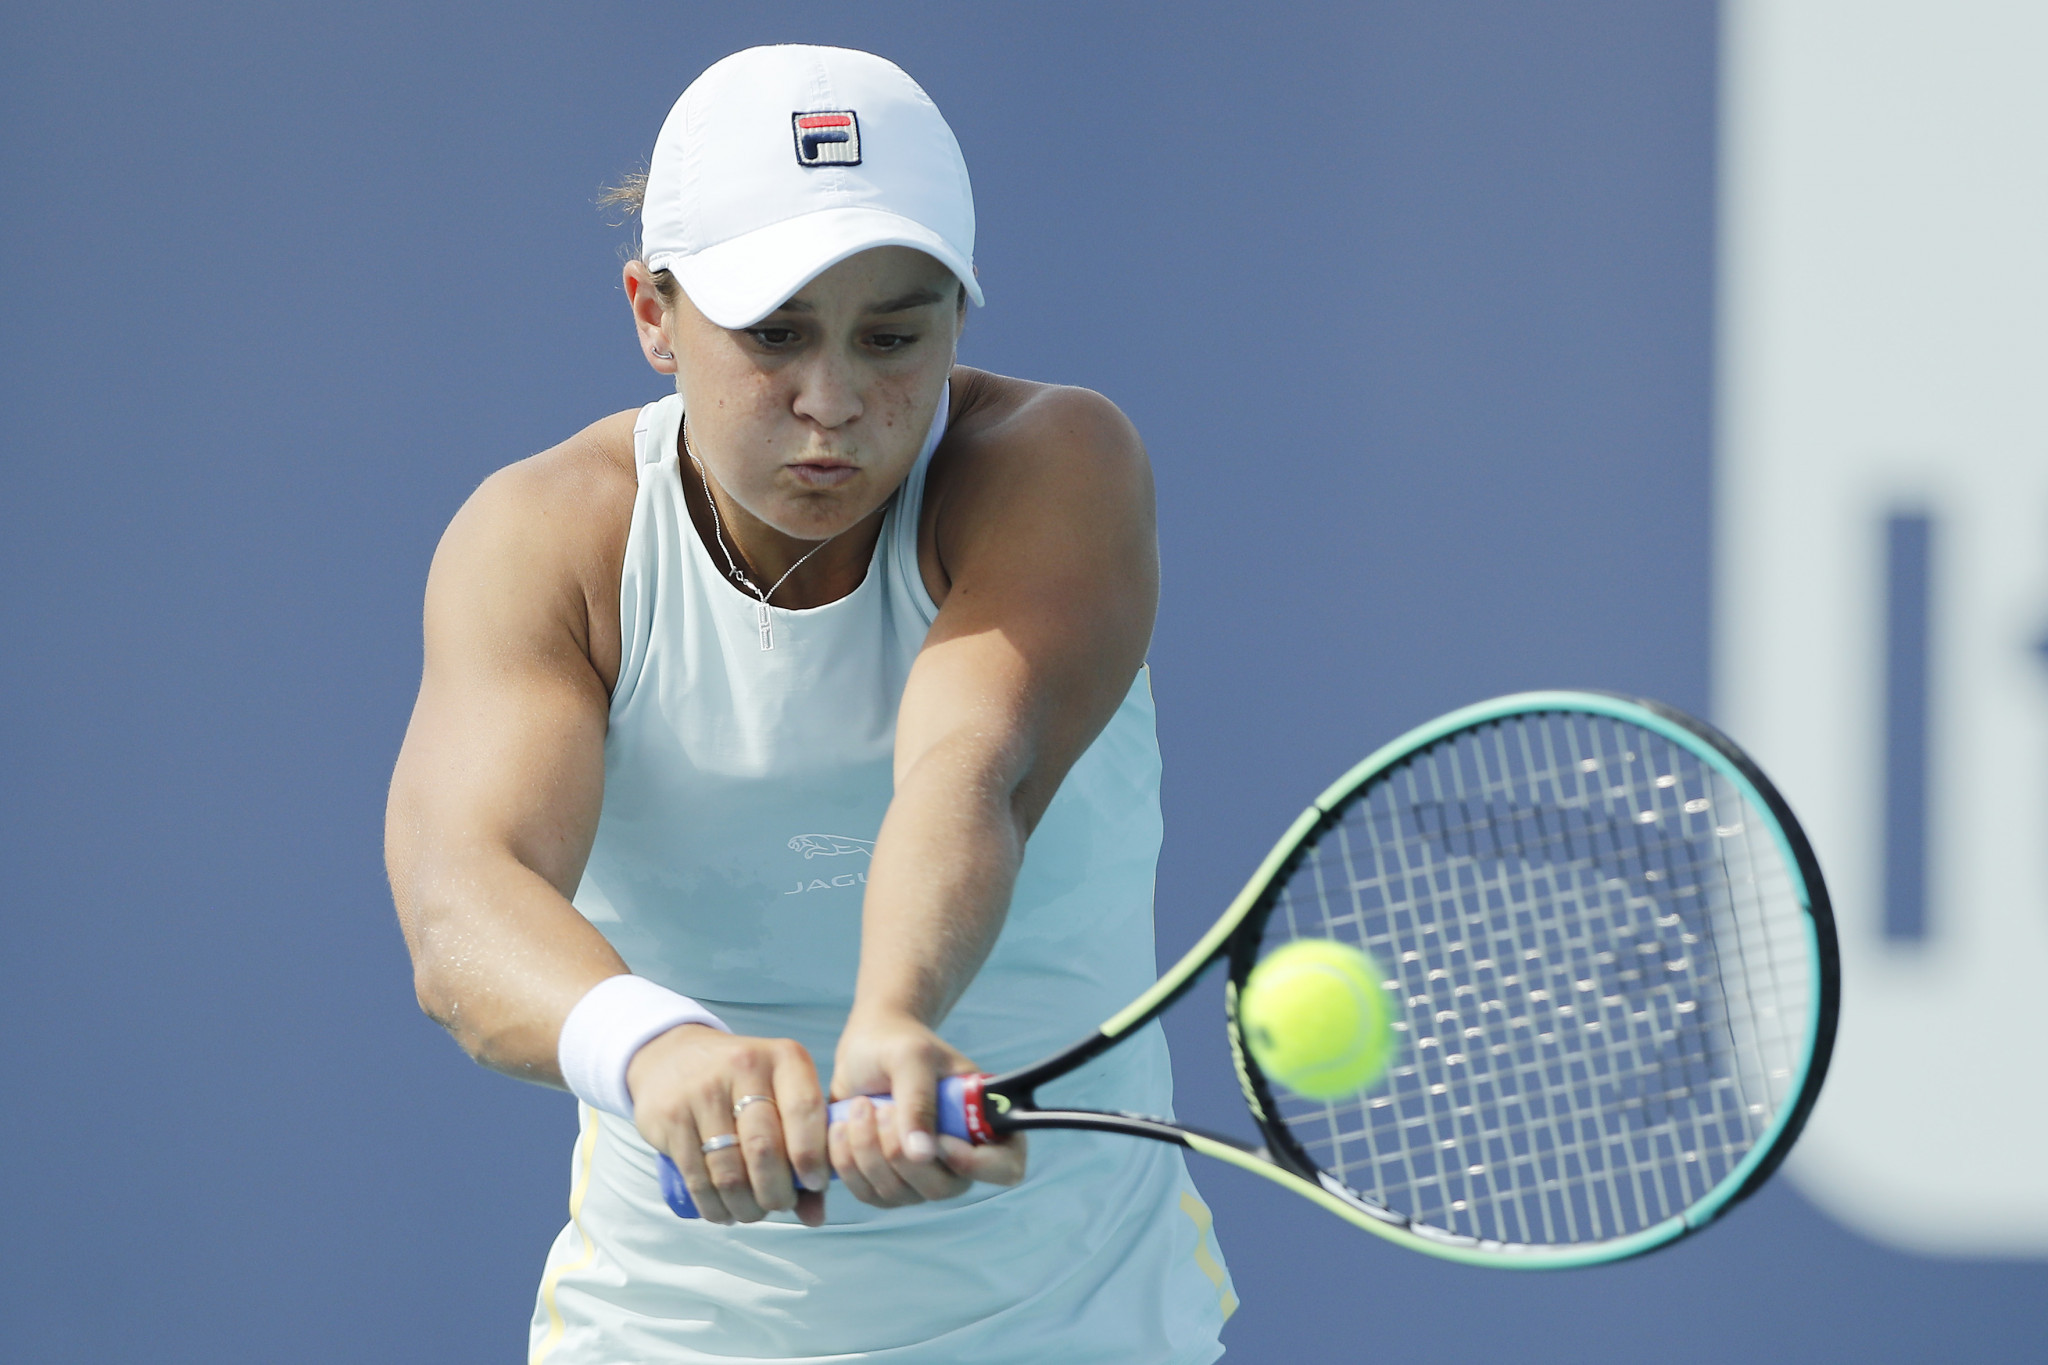 HEAD is a sponsor of Australian tennis player Ash Barty ©Getty Images